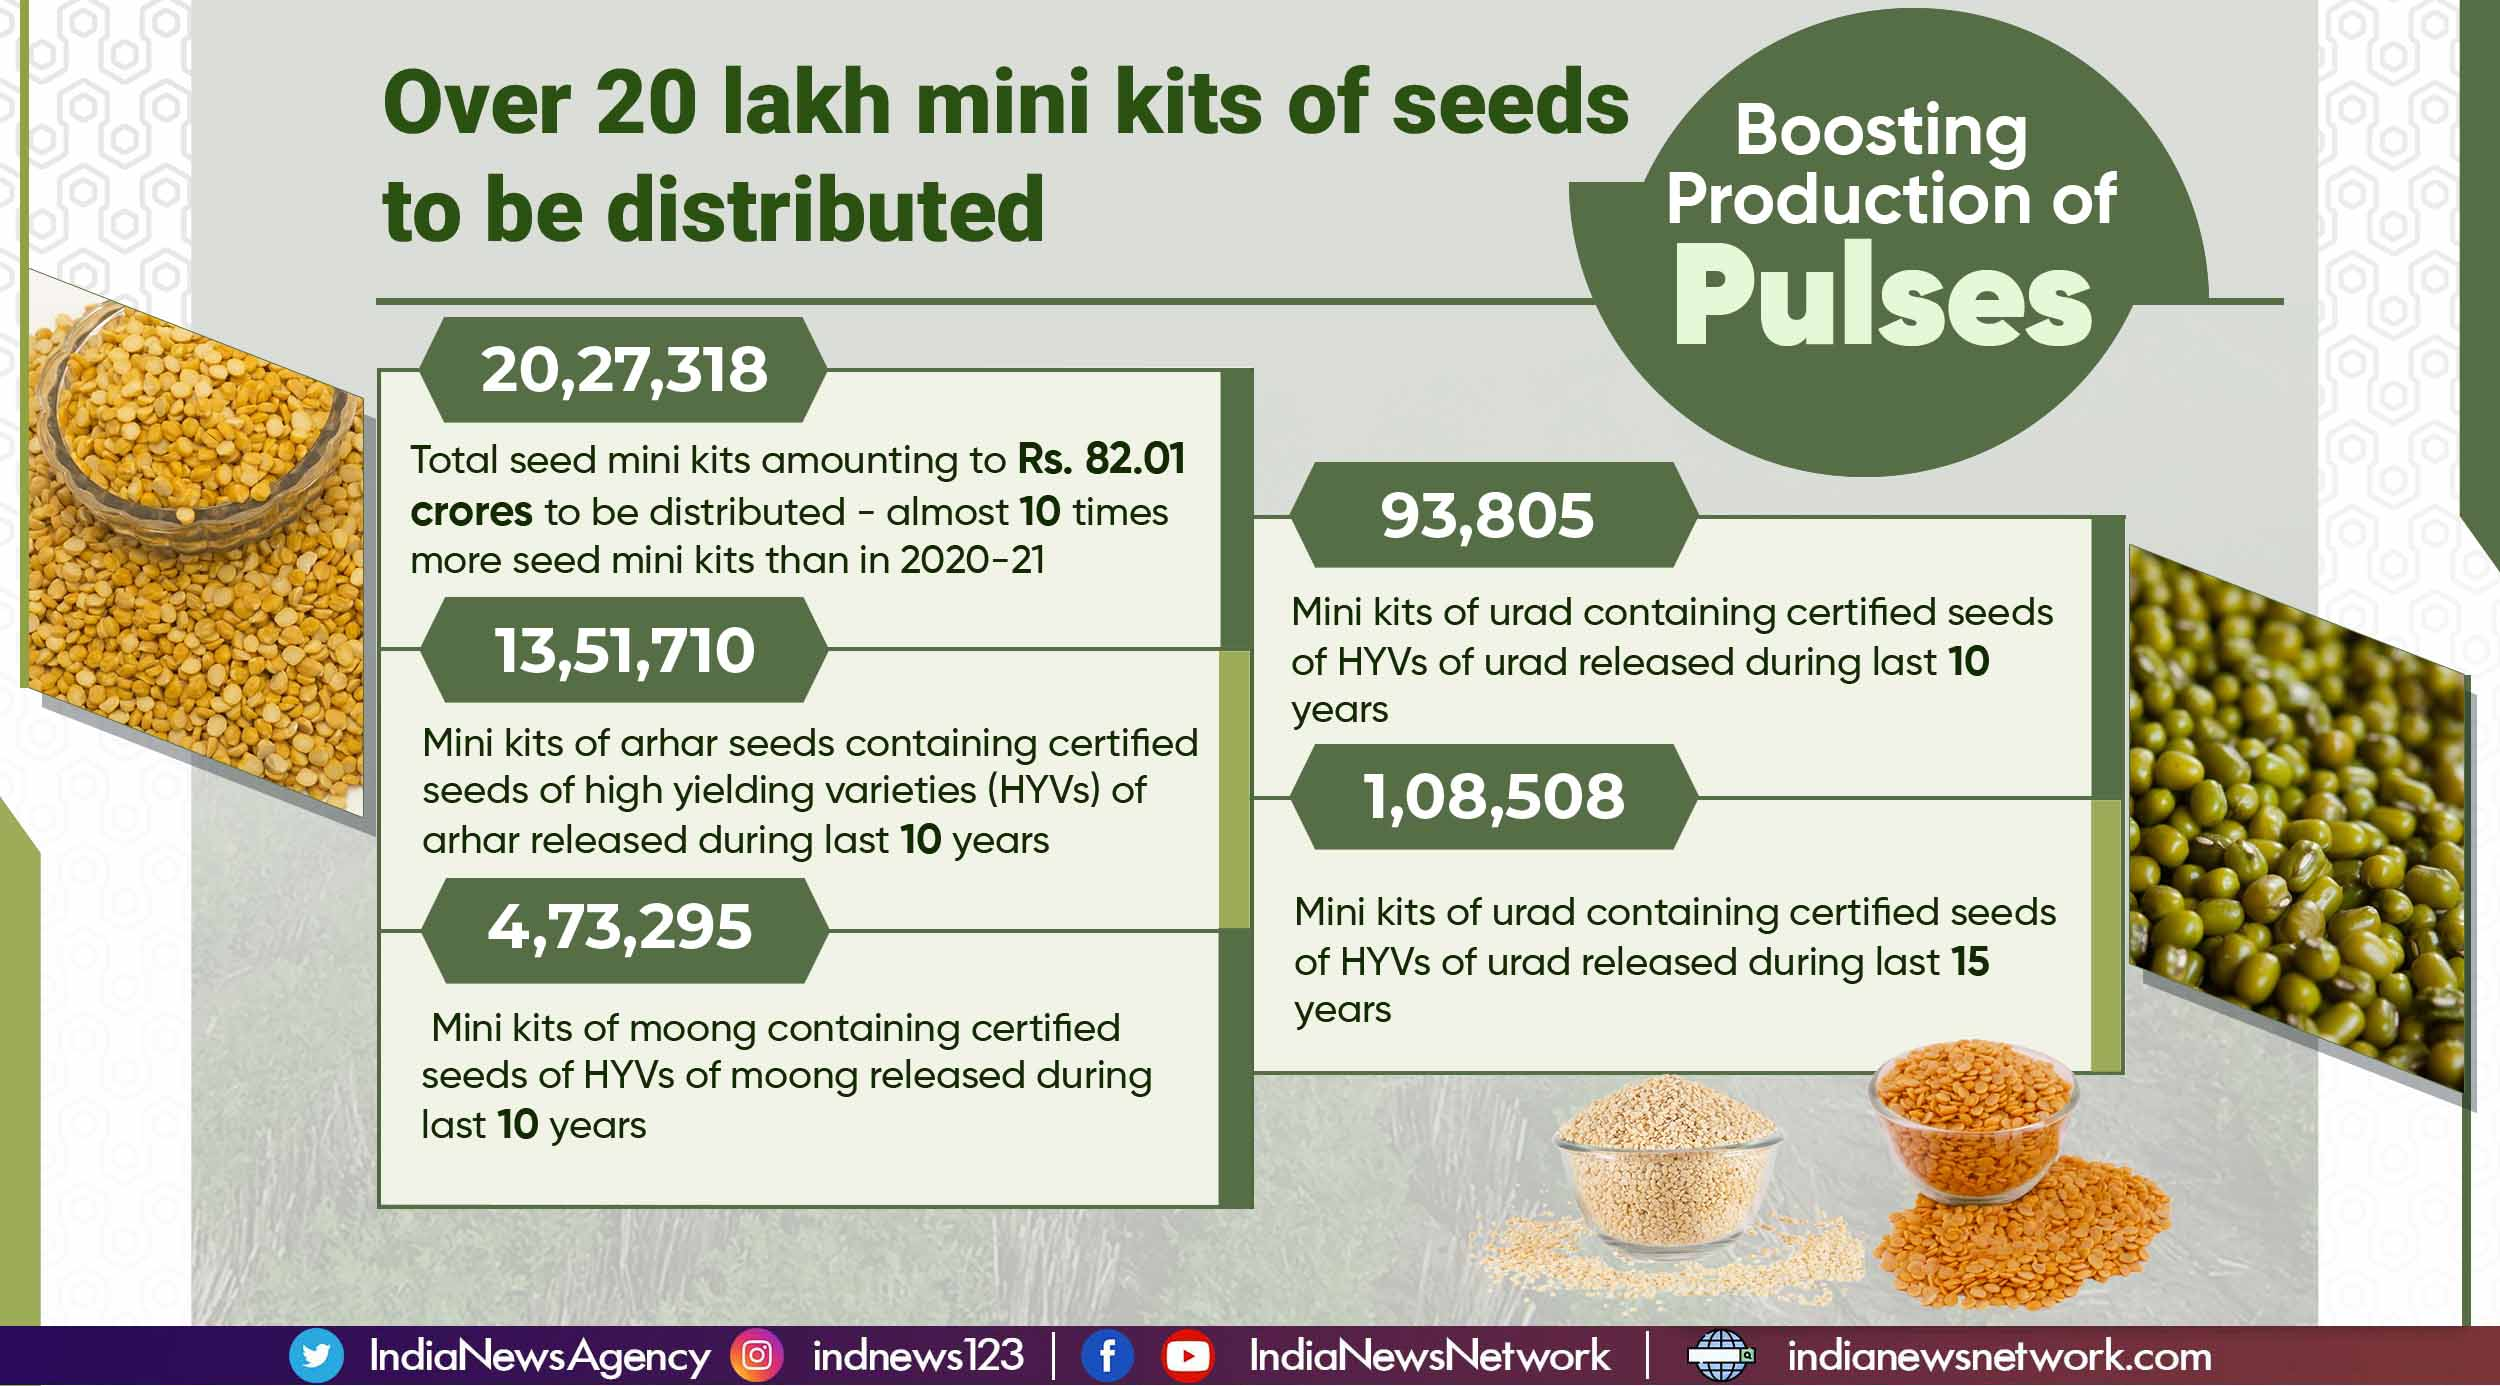 For self-sufficiency in pulses, special Kharif strategy for 2021 season